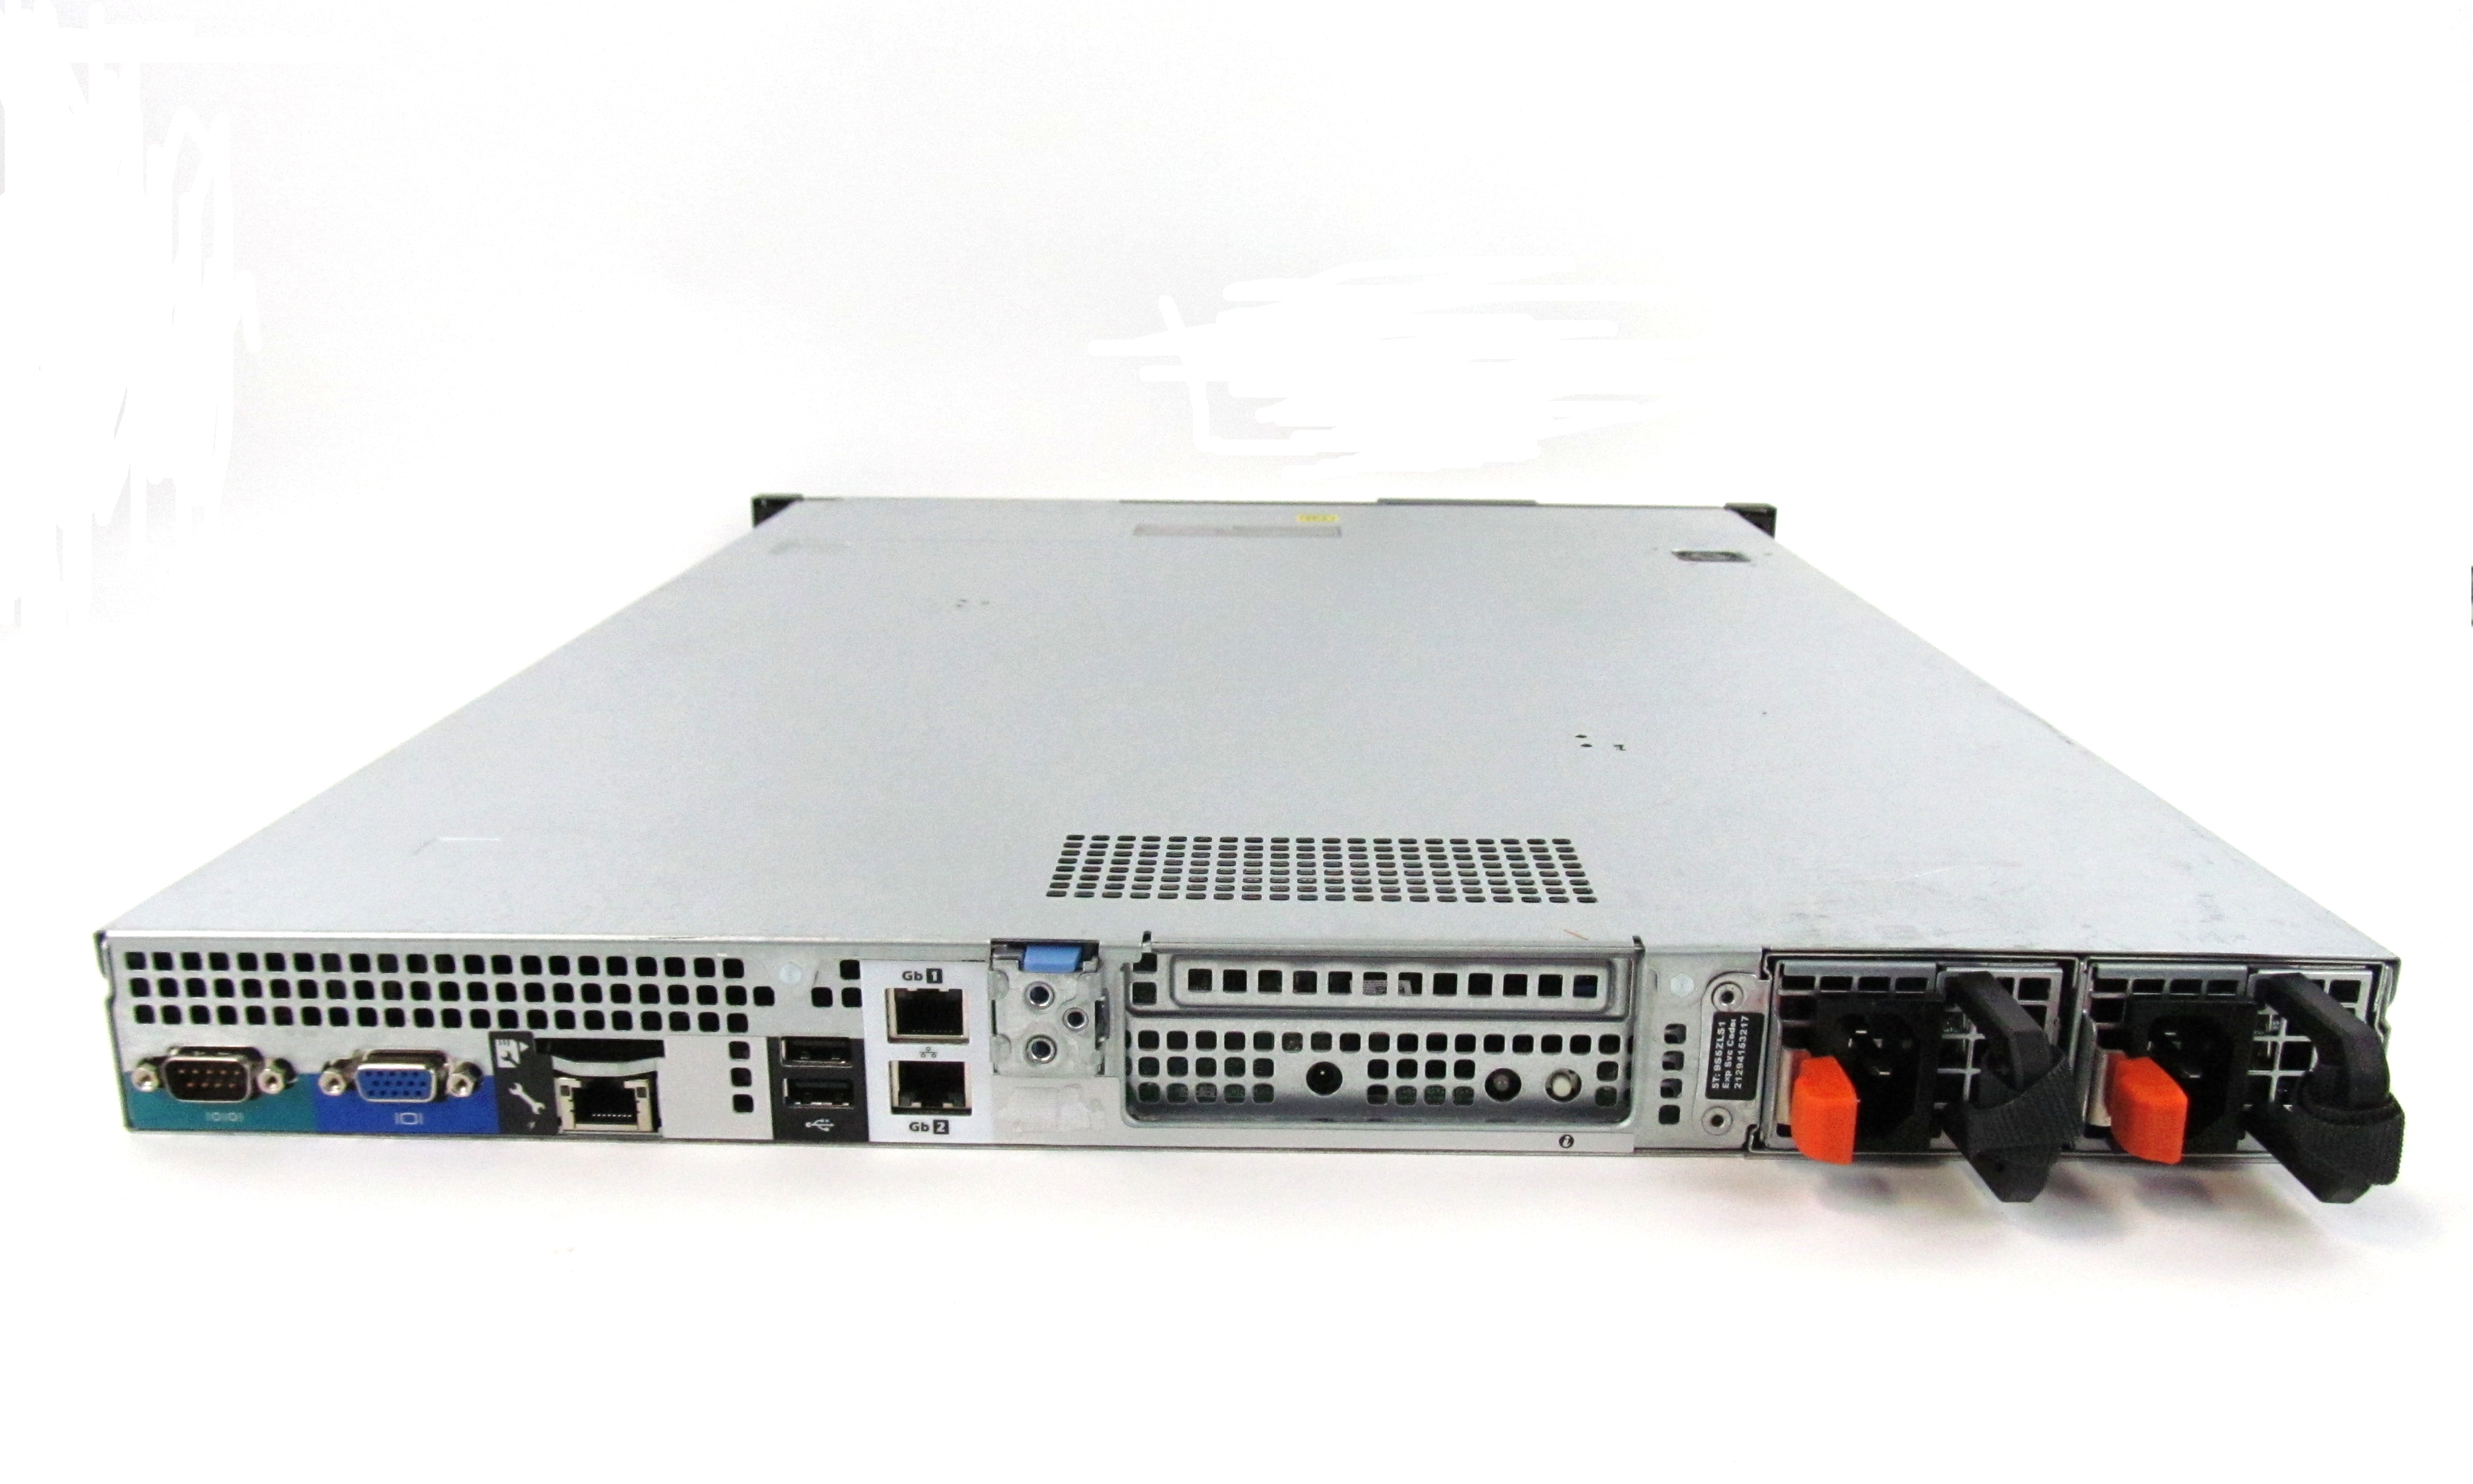 Dell Poweredge R410 2x2.66GHZ X5650 Six core,16GB RAM,1x 250gb SATA HD, Rails